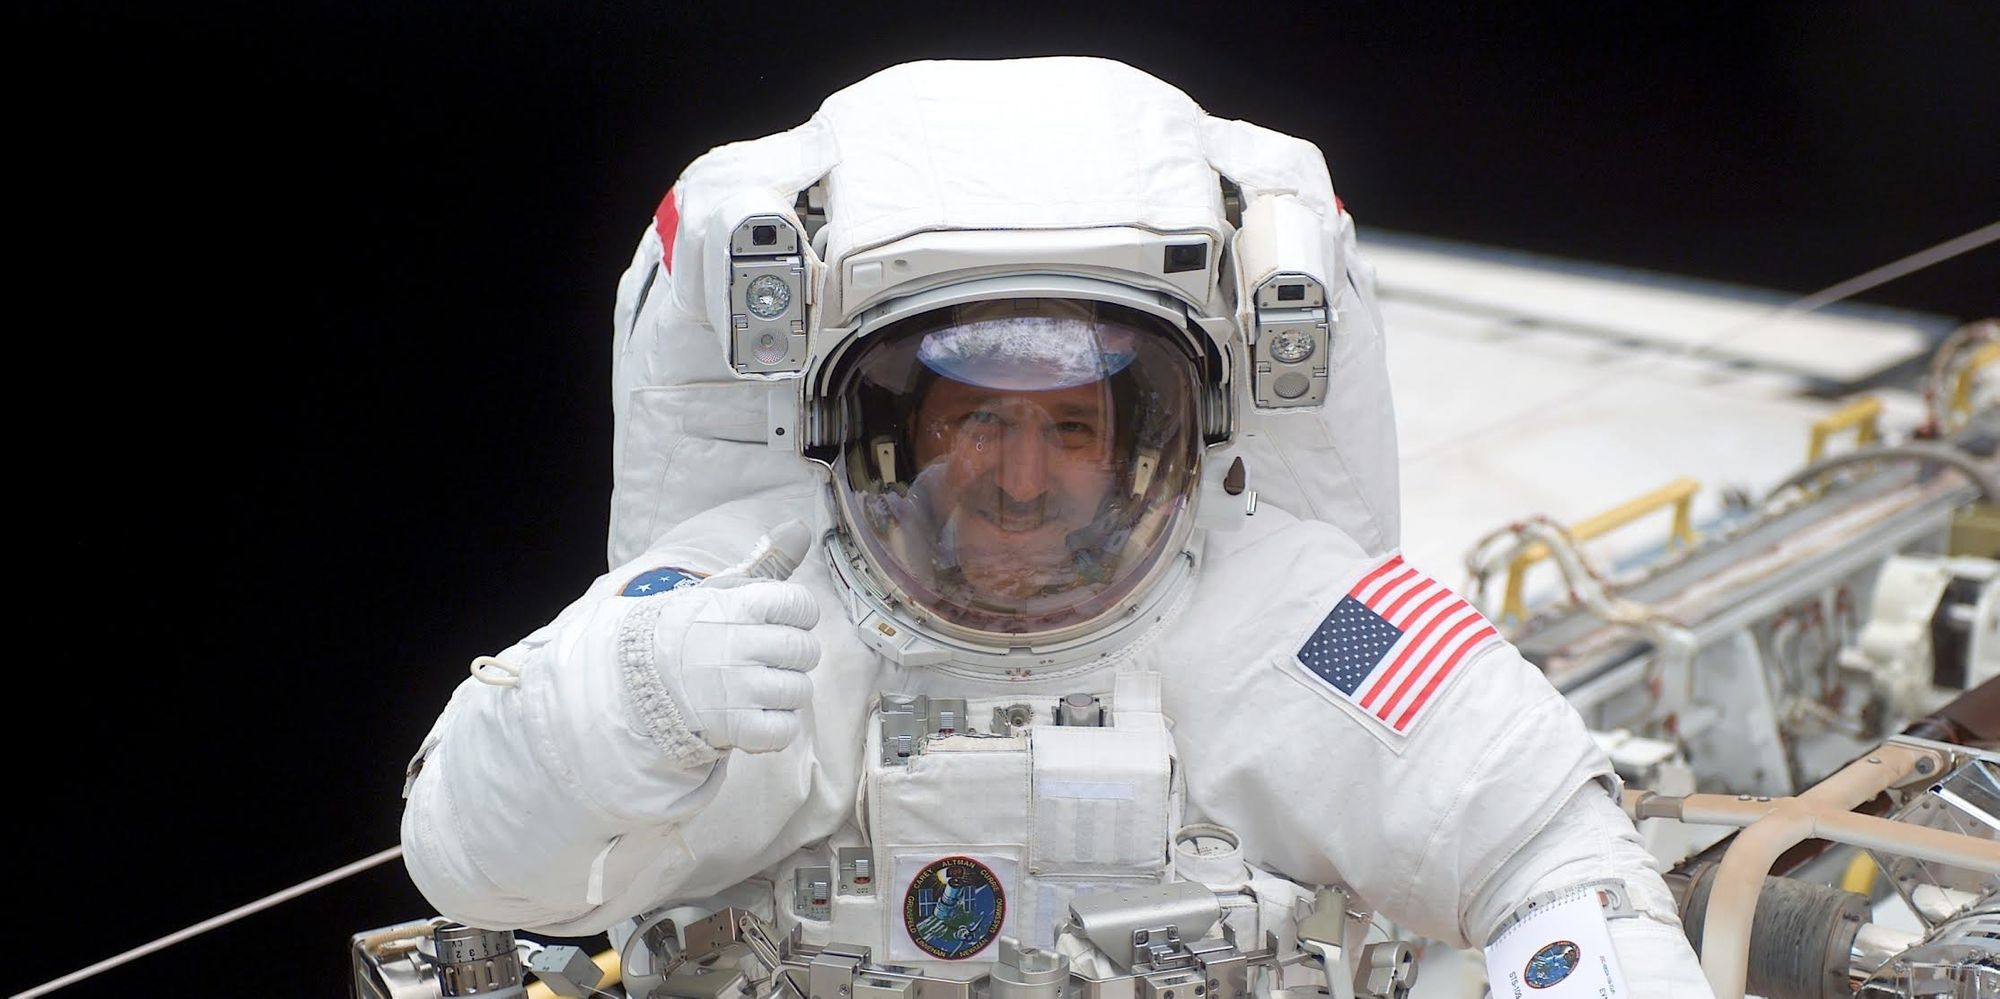 Why Mars? An Astronaut's Perspective | Huffington Post